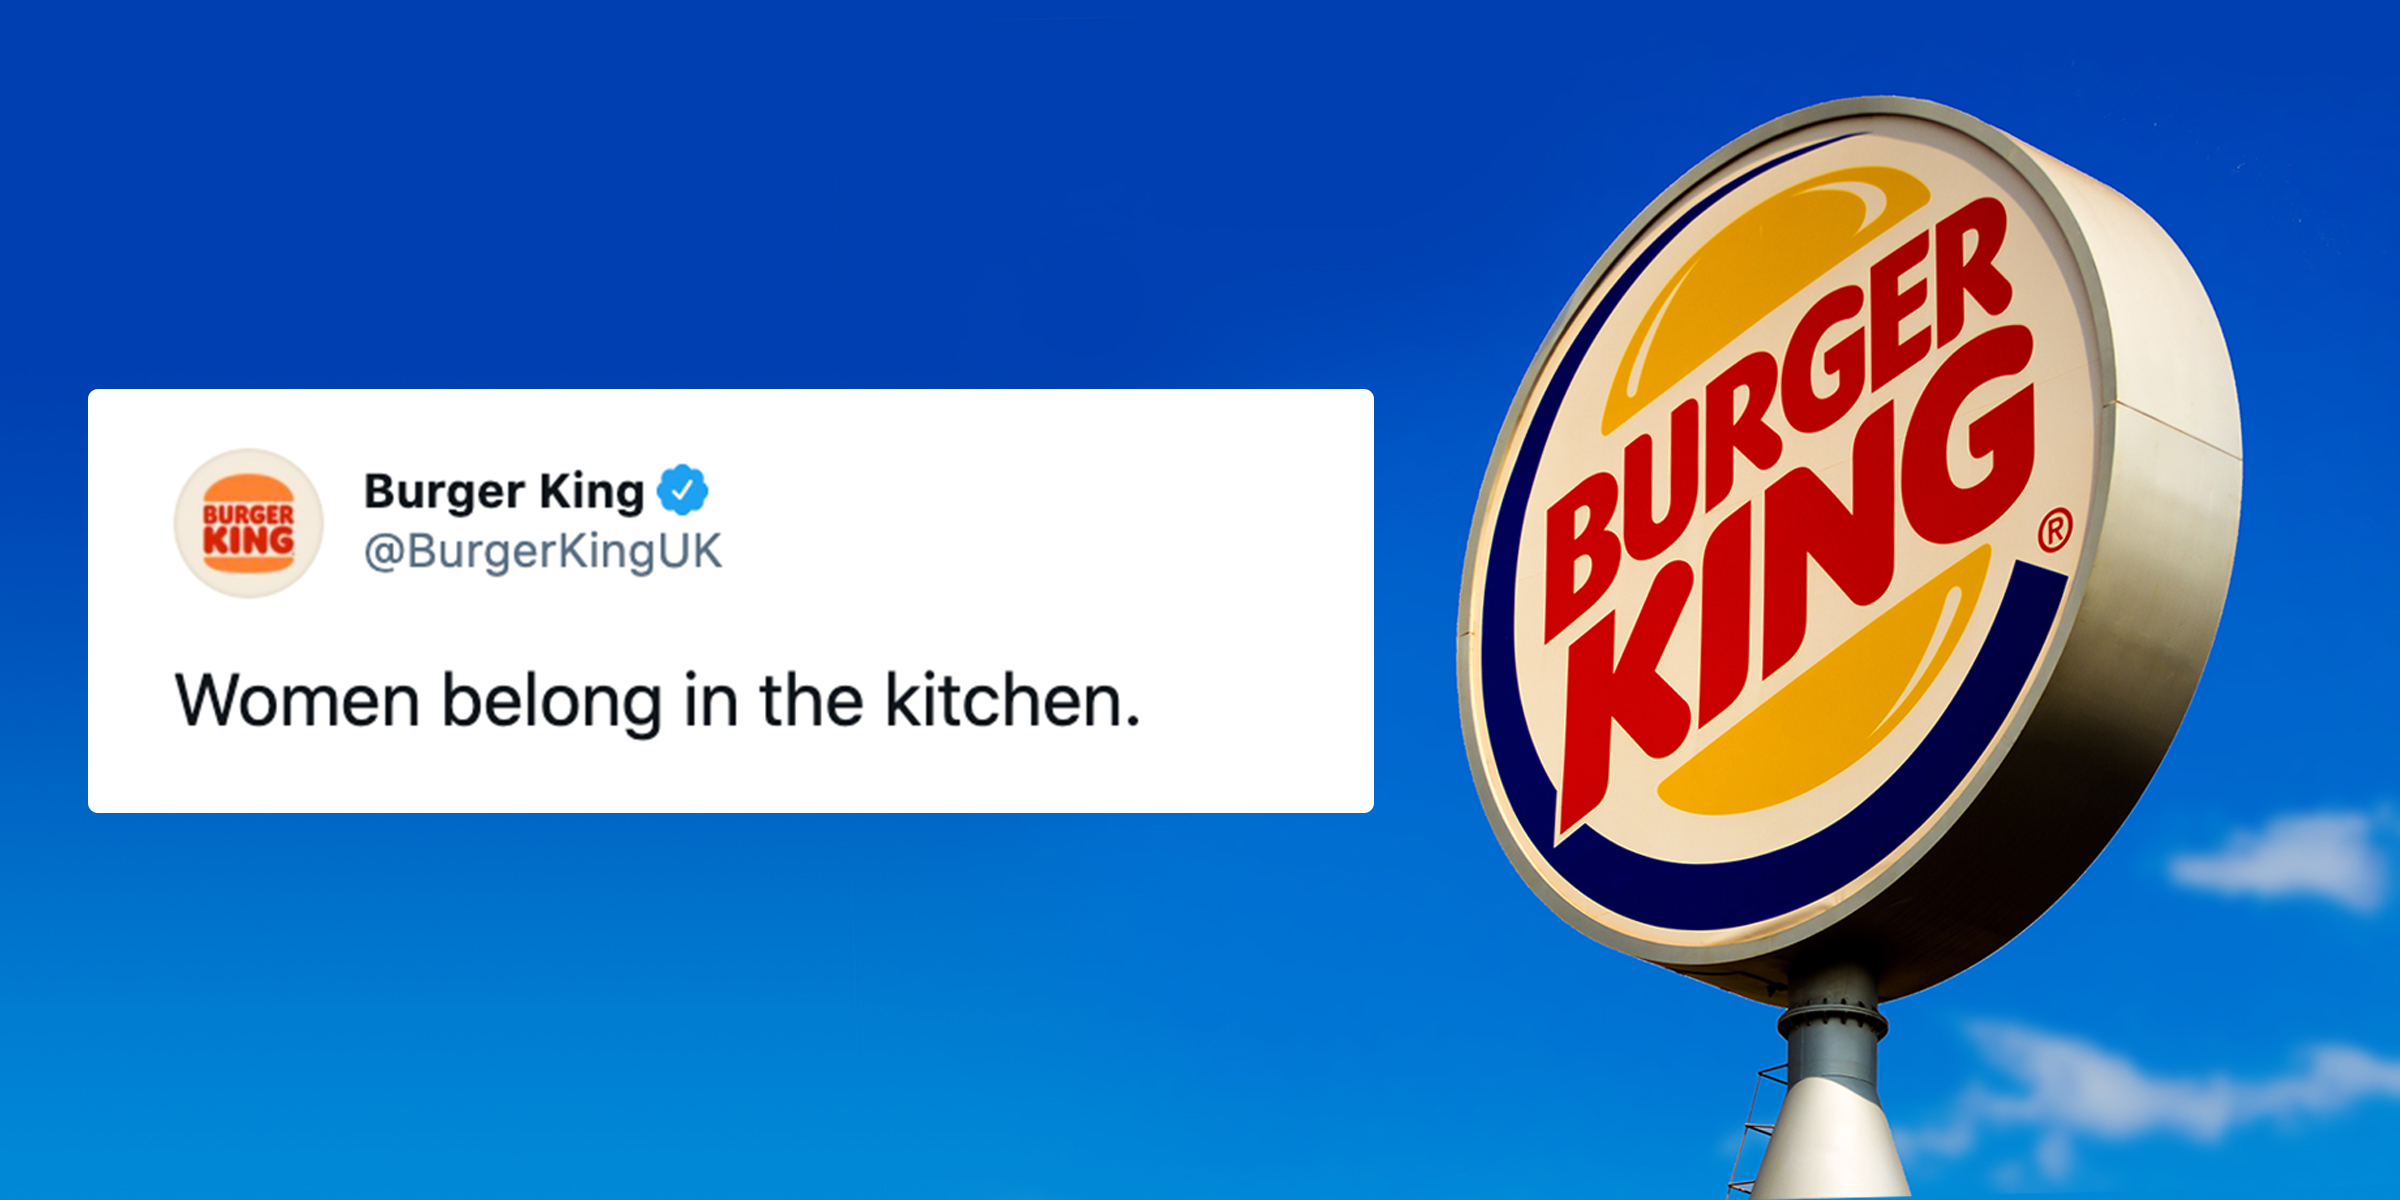 Burger King Uk Shares Women Belong In The Kitchen Post